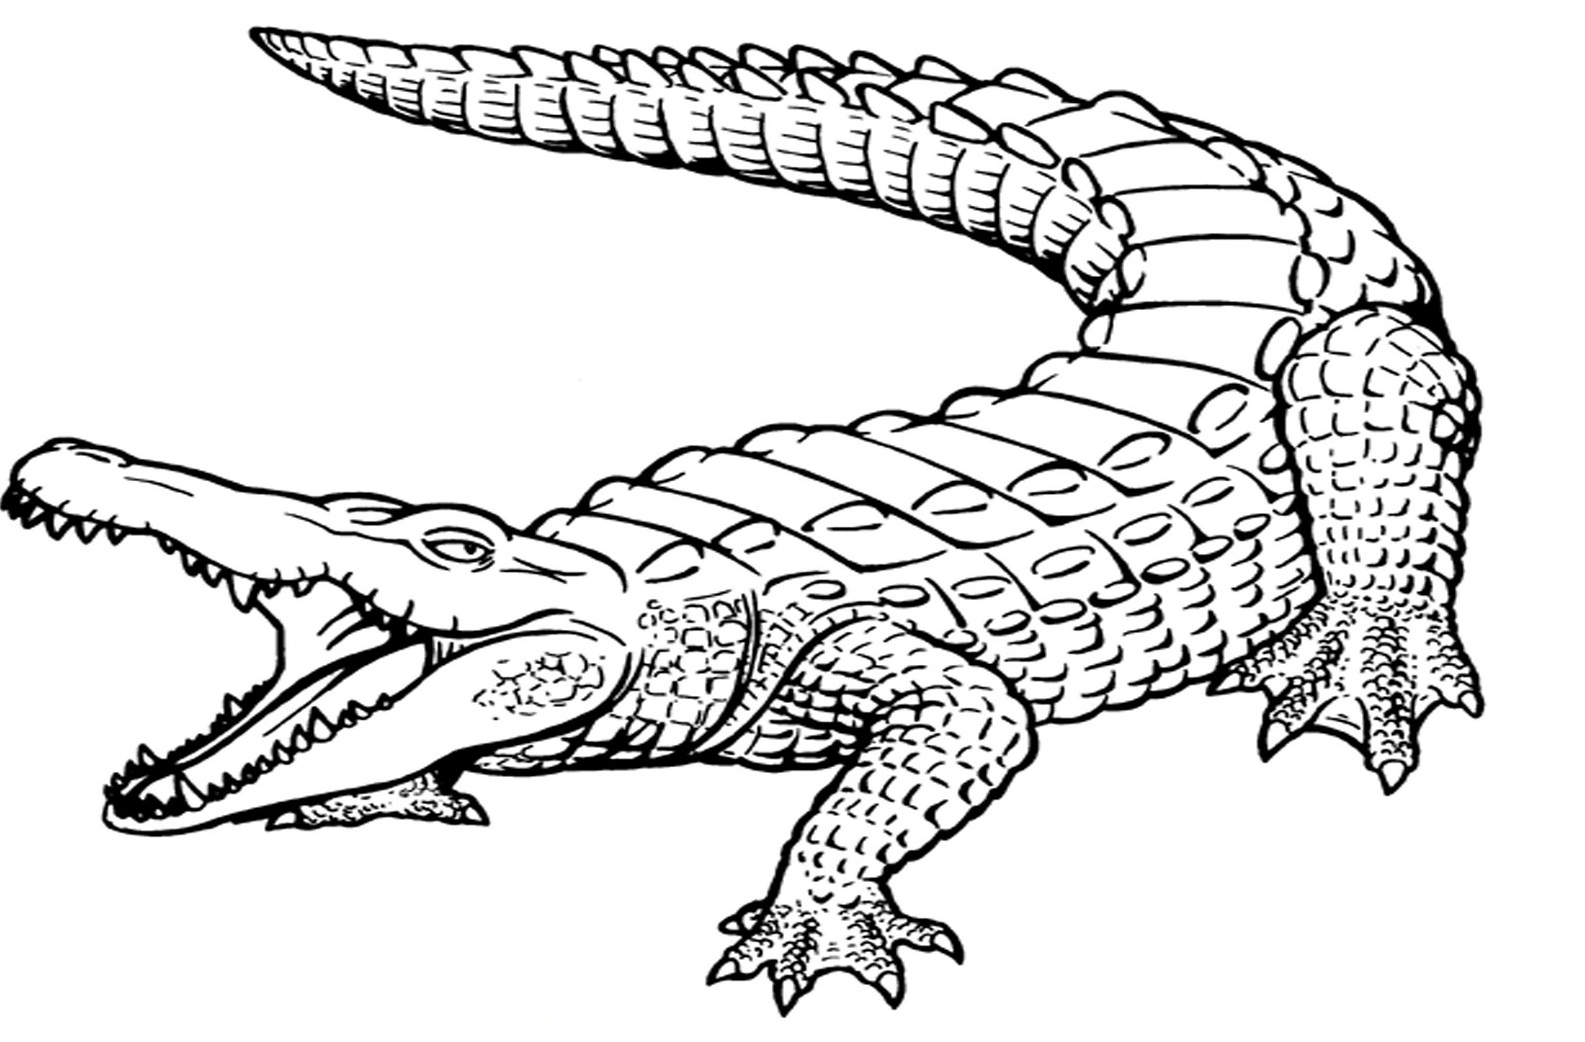 crocodile coloring pages to print baby crocodiles coloring pages free printable coloring pages to coloring print crocodile pages